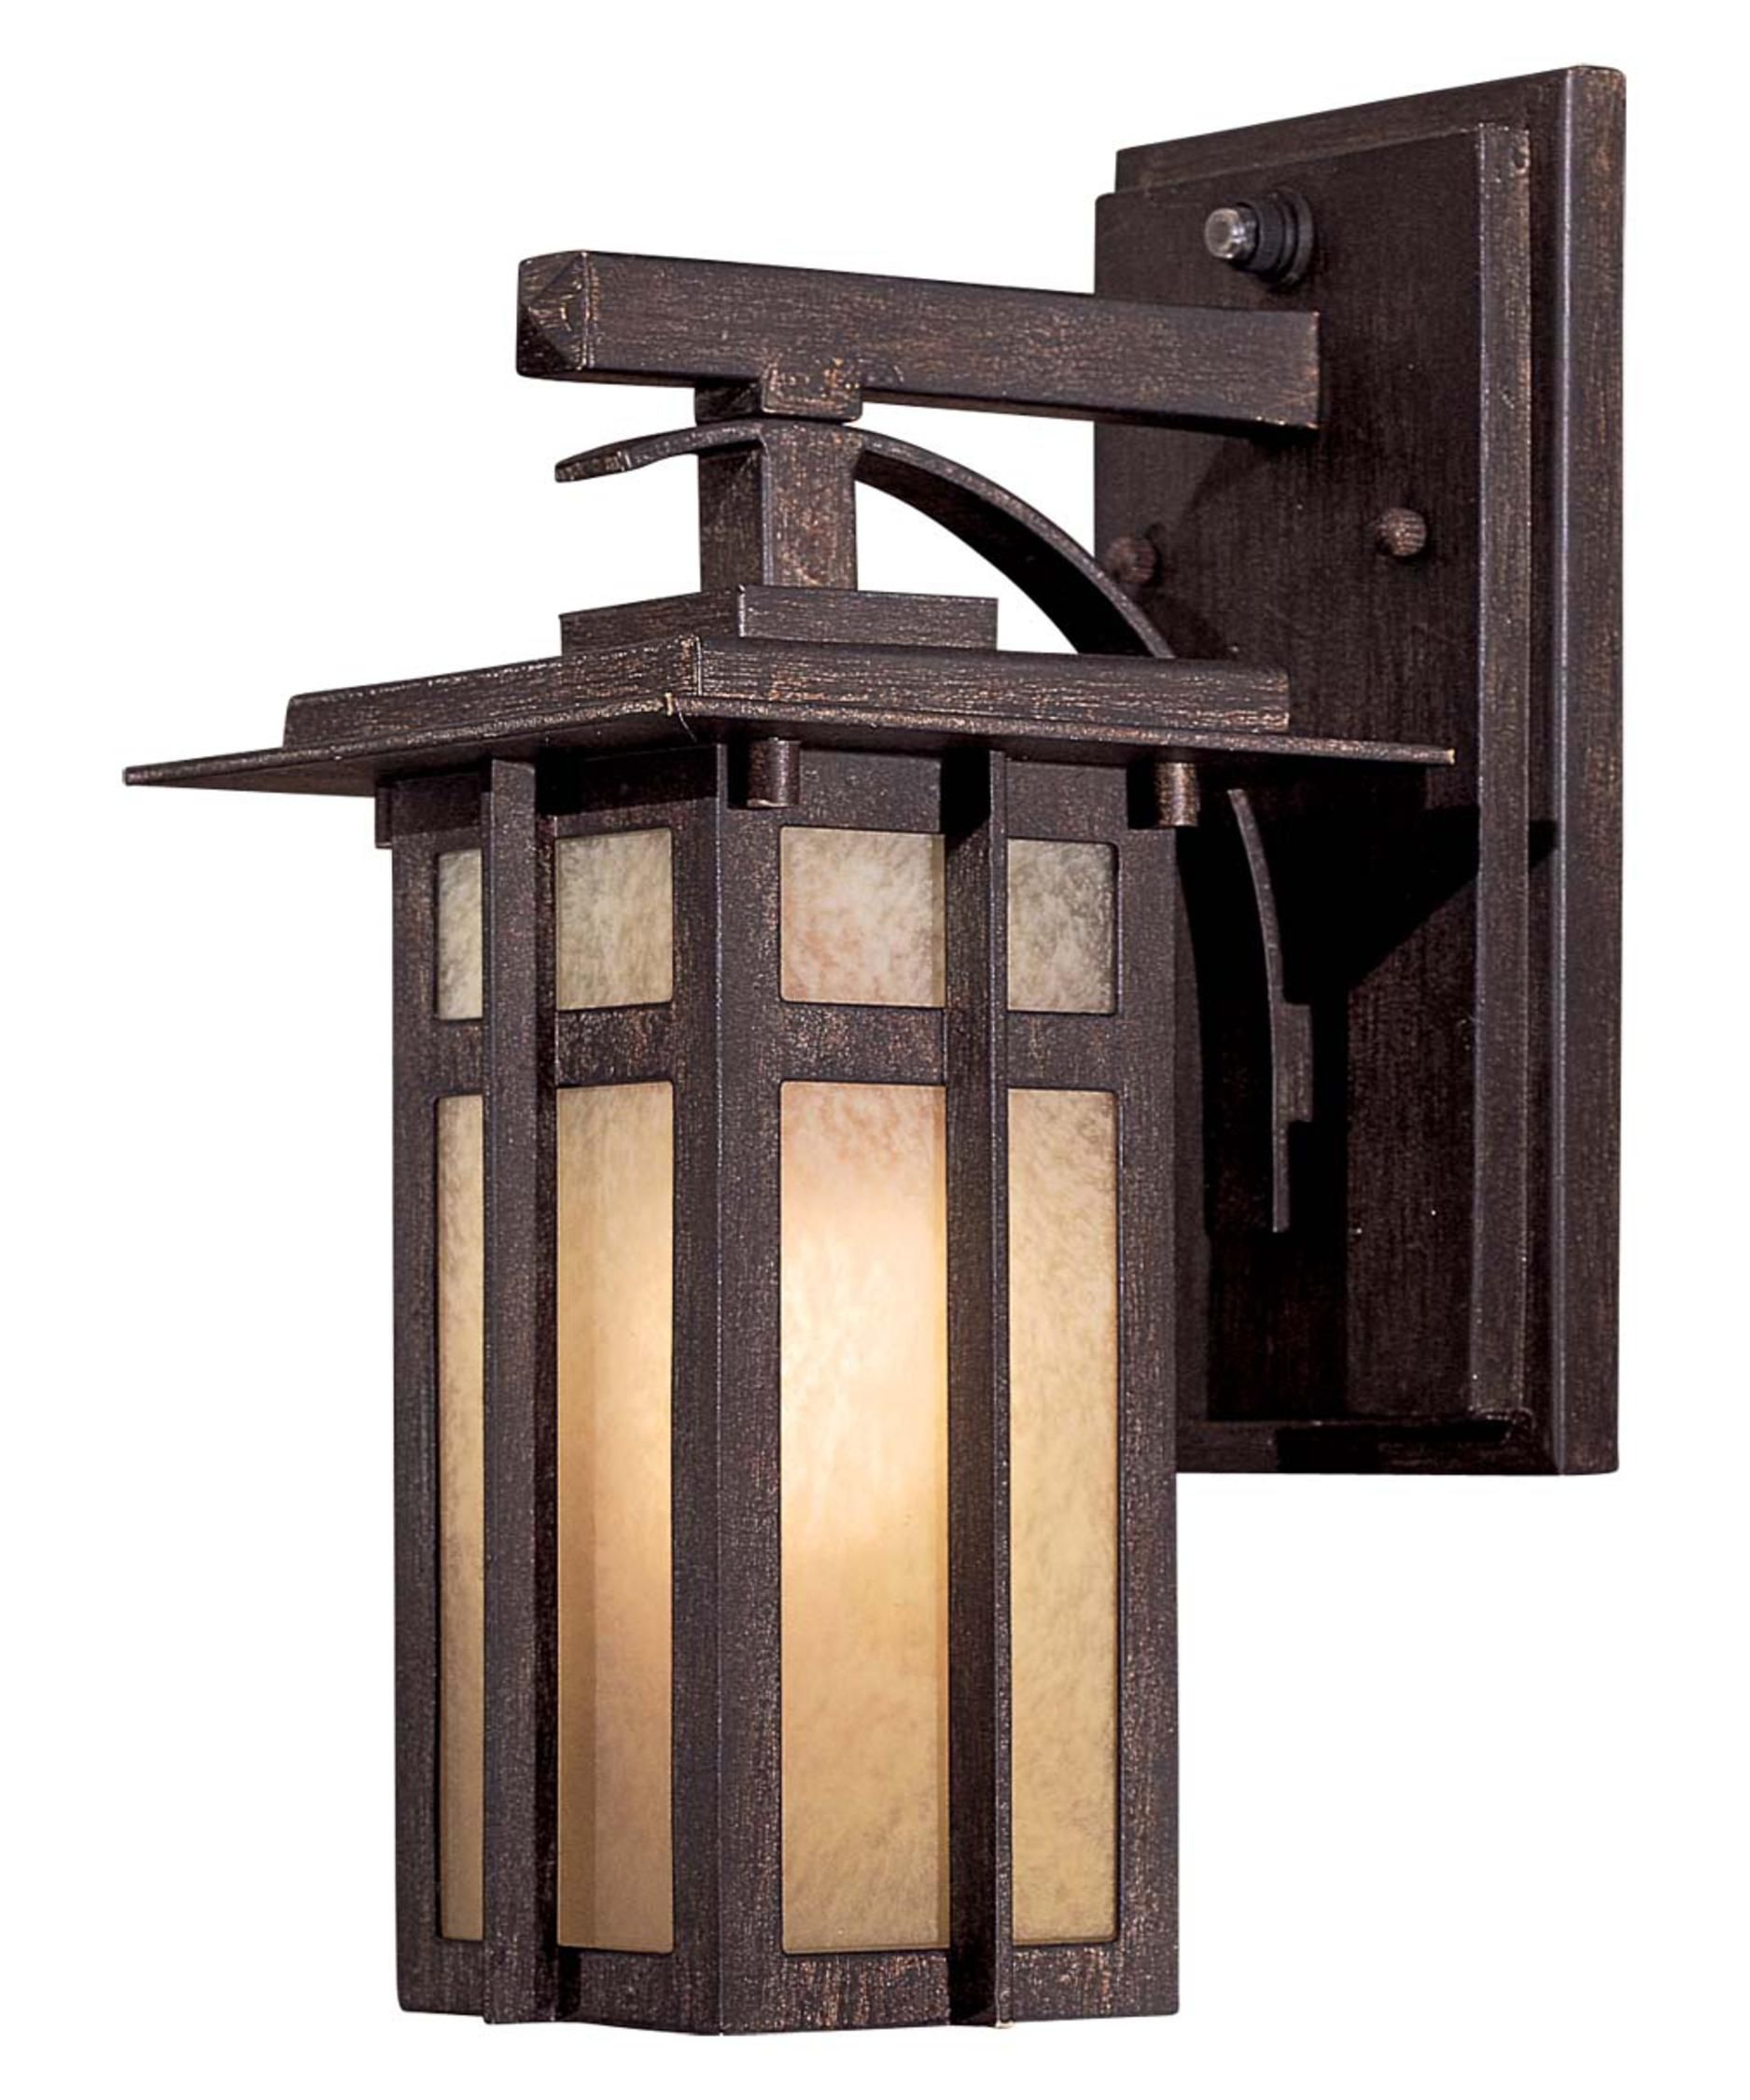 Delancy 12 Inch Tall 1 Light Outdoor Wall Light by Minka